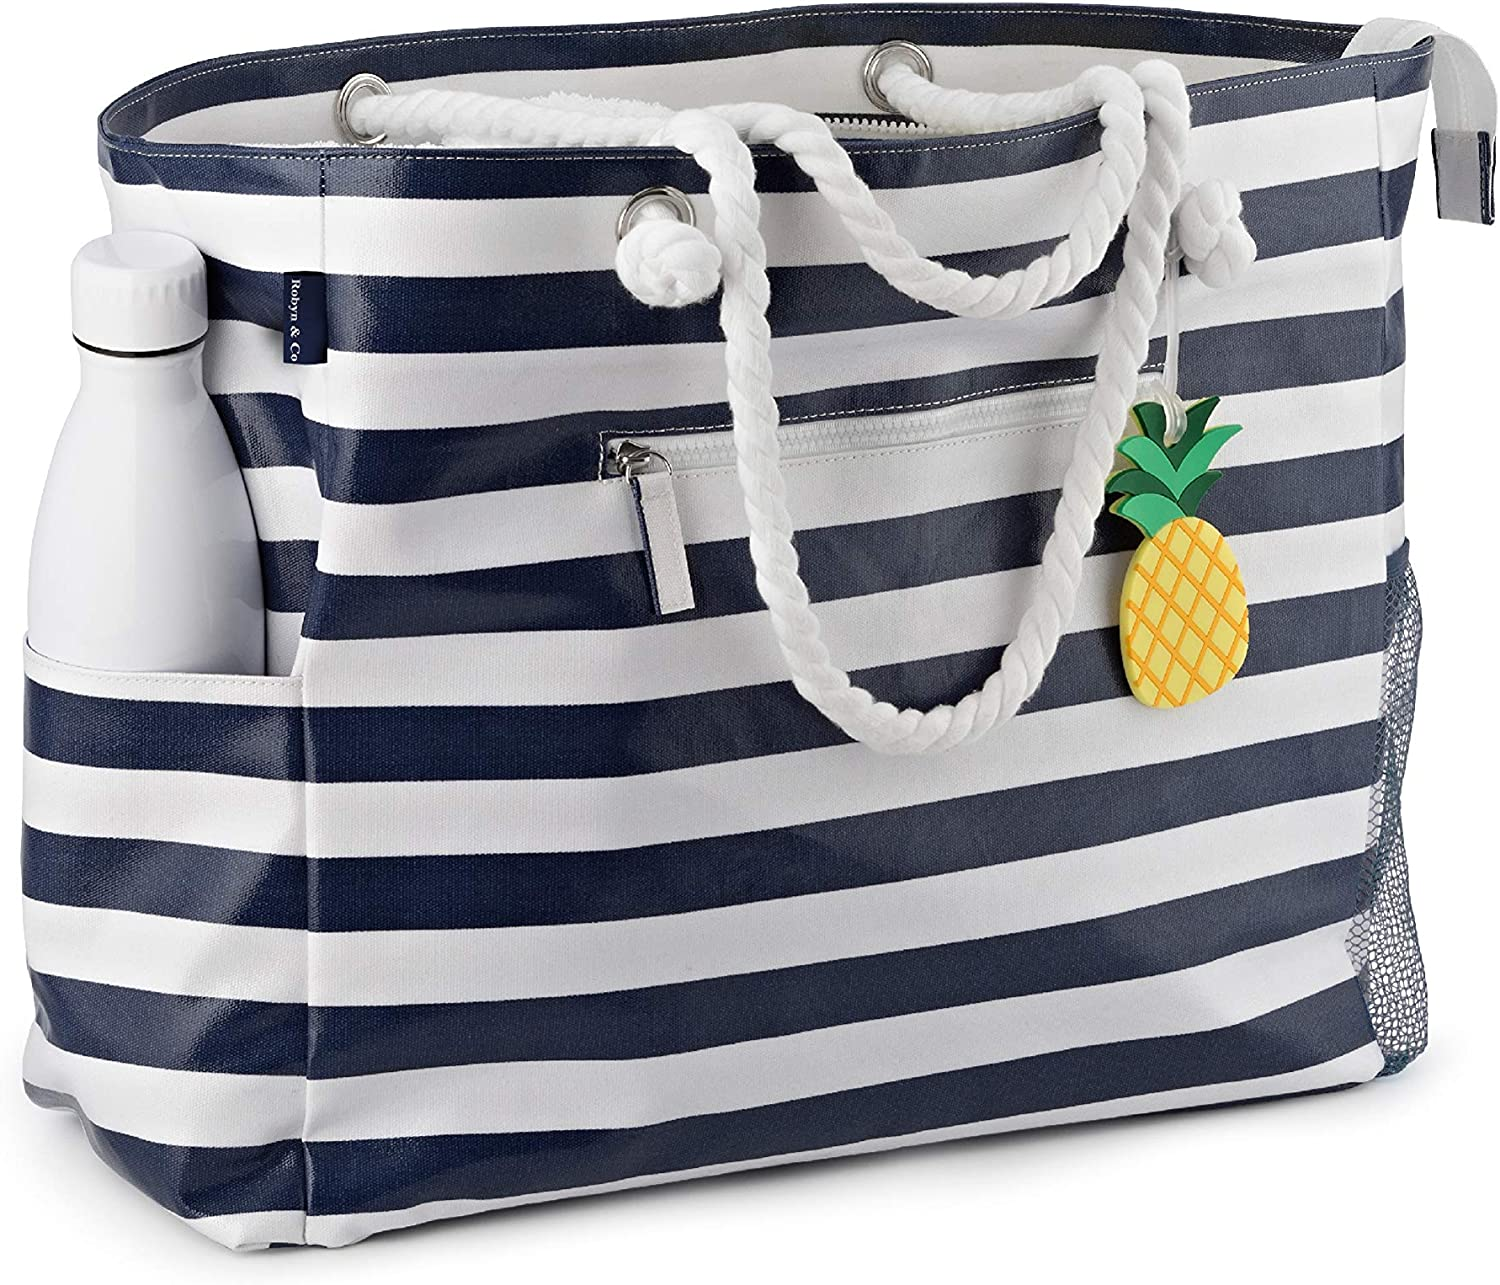 Large Beach Bag-Waterproof Canvas Beach Tote with Top Zipper-6 pockets-Navy Blue-by Robyn Co